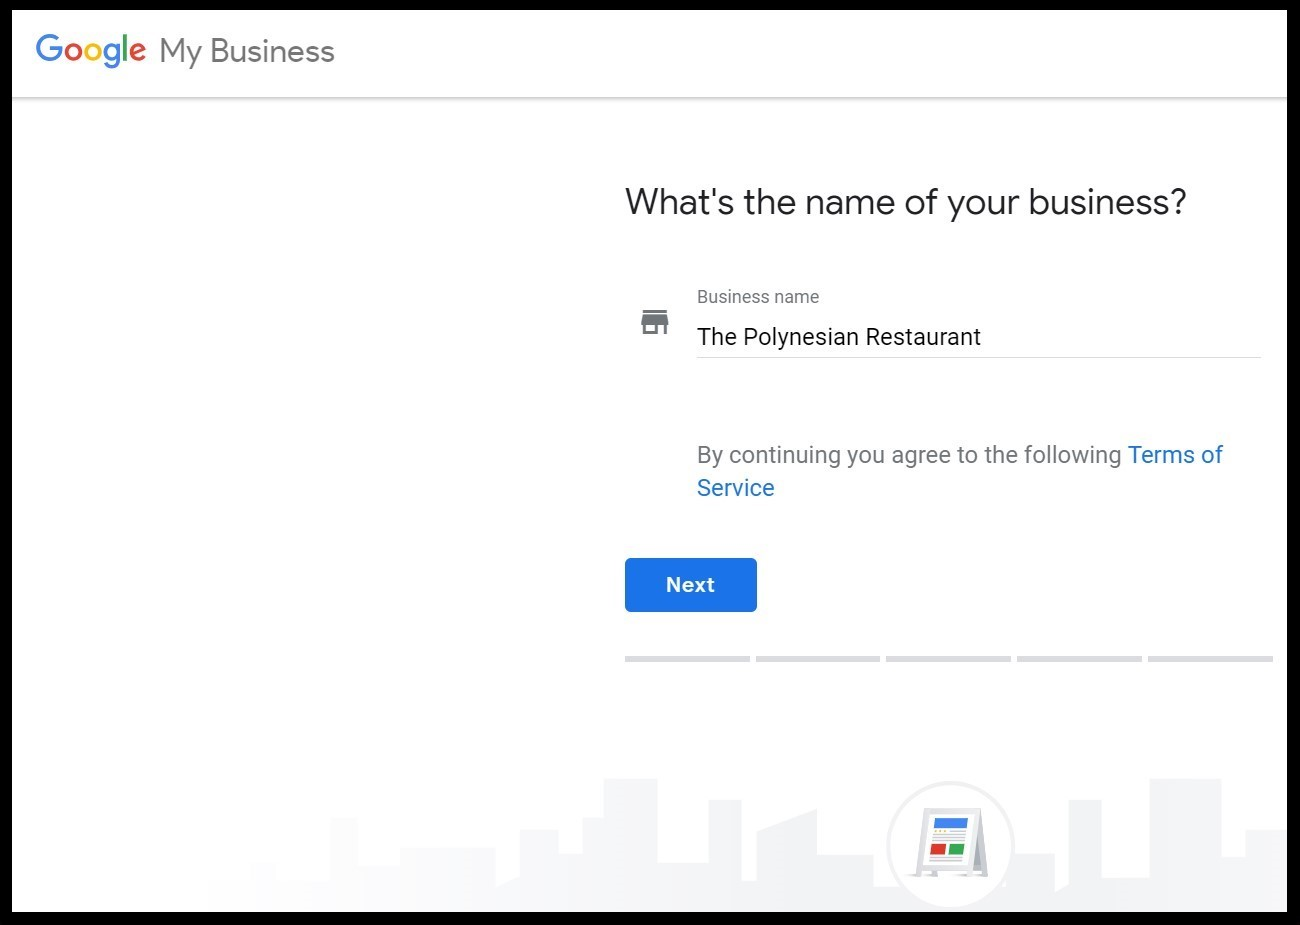 Benefits of Google My Business: Easy Googly My Business Set Up by first typing in the name of the restaurant